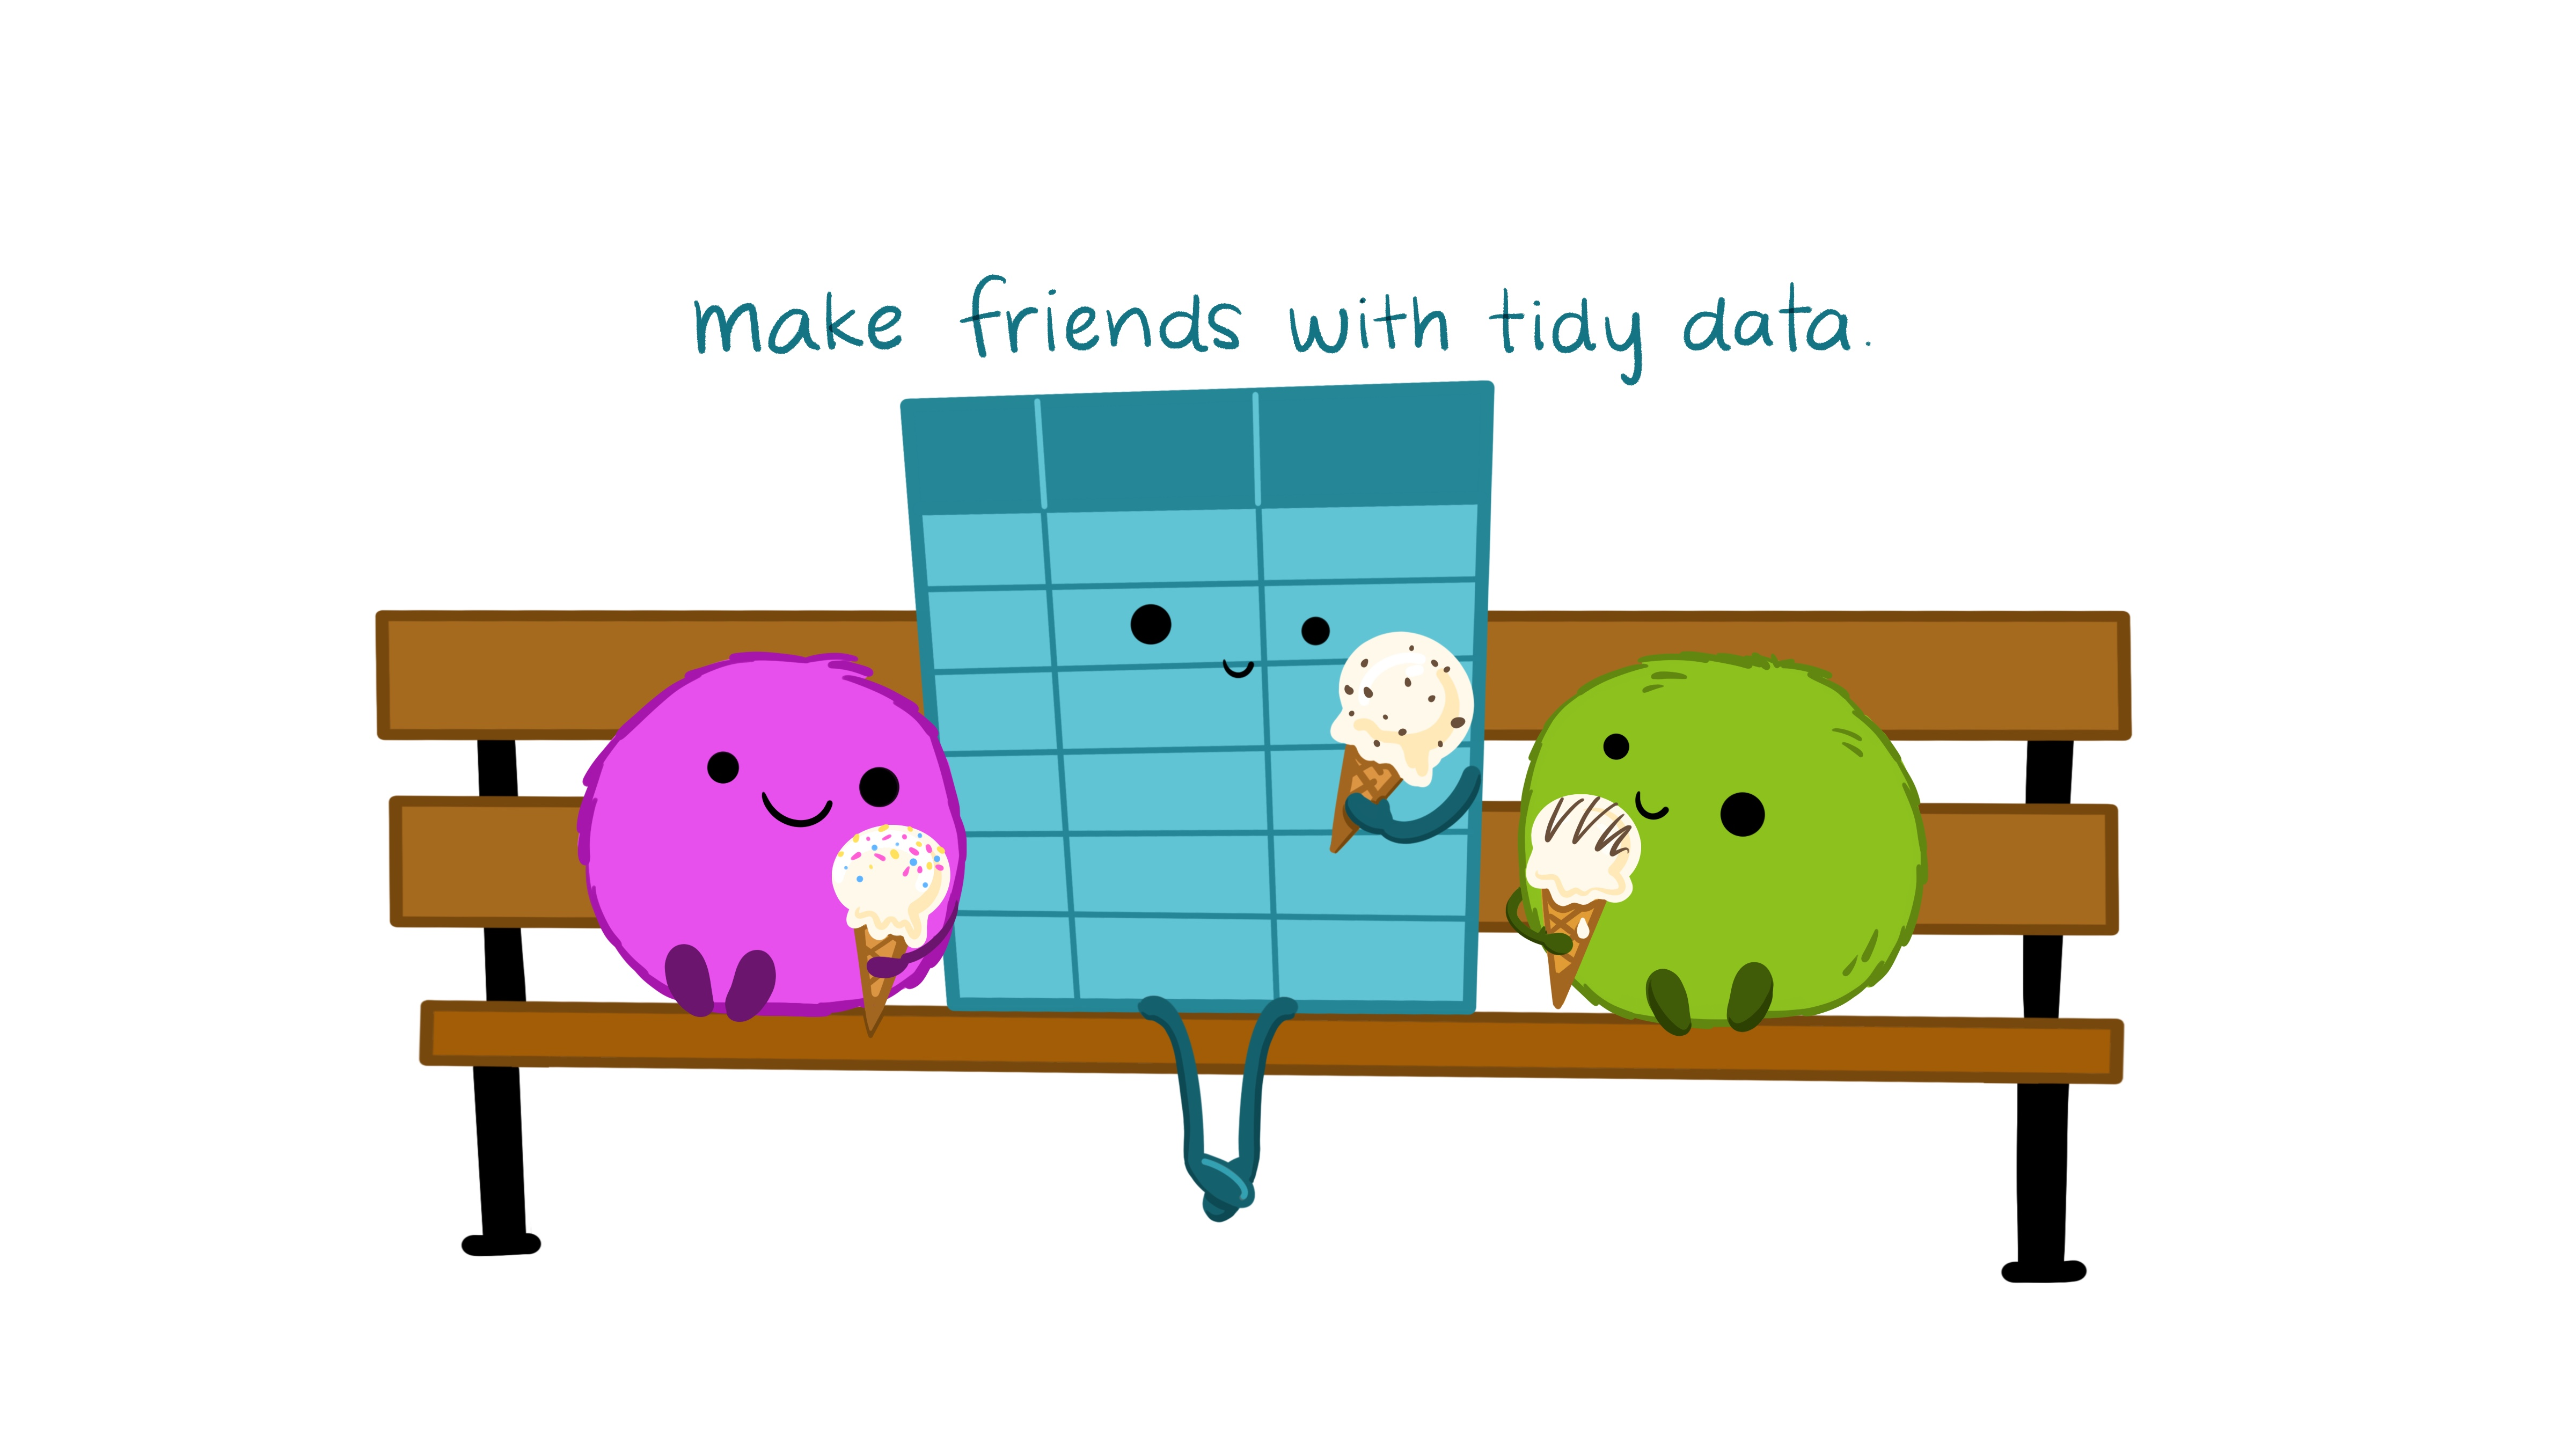 Illustrations from the [Openscapes](https://www.openscapes.org/) blog [*Tidy Data for reproducibility, efficiency, and collaboration*](https://www.openscapes.org/blog/2020/10/12/tidy-data/) by Julia Lowndes and Allison Horst